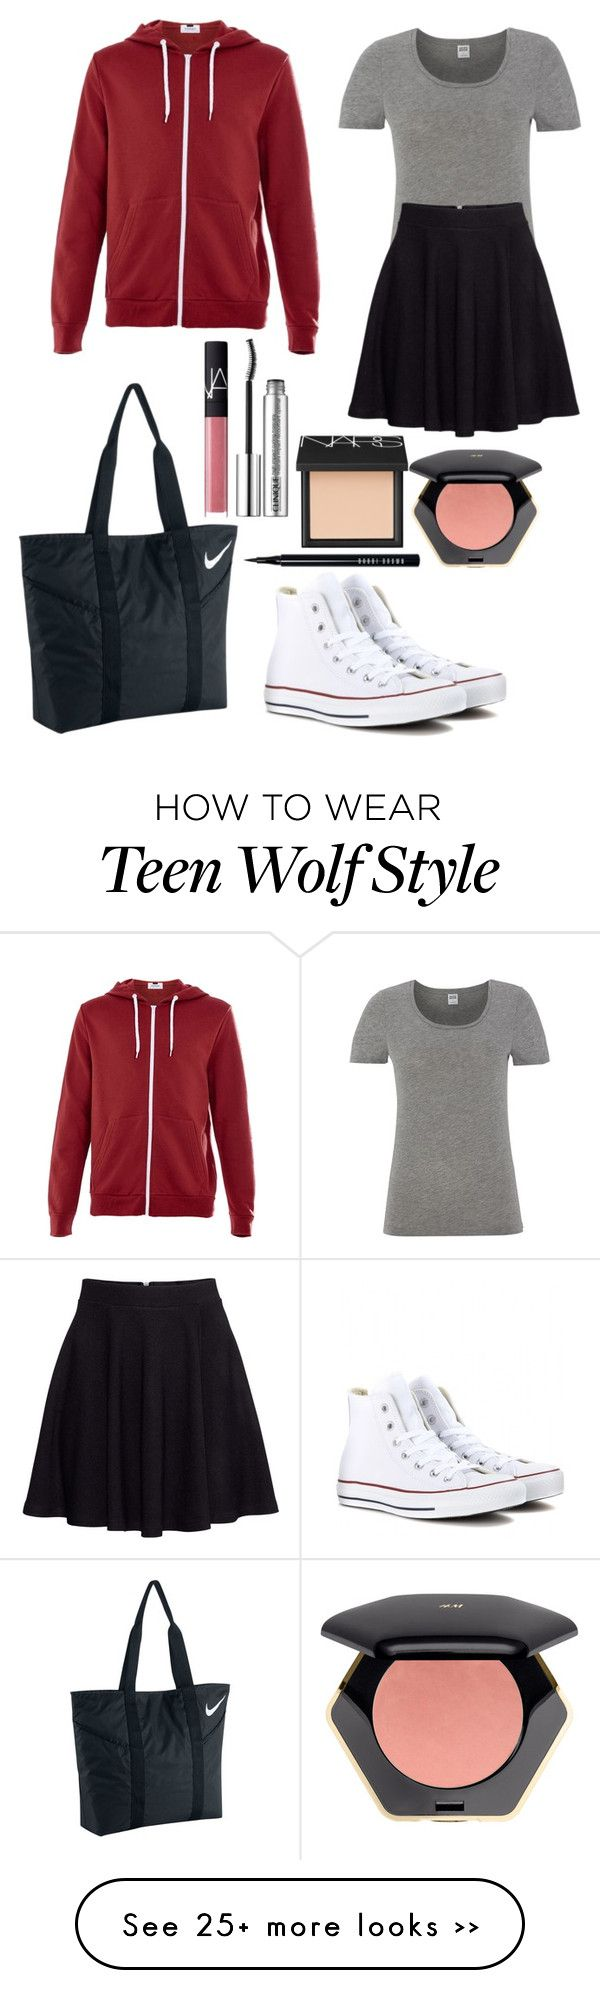 """""""Teen Wolf- Stiles Stilinski Inspired Shopping Outfit"""" by lili-c on Polyvore"""